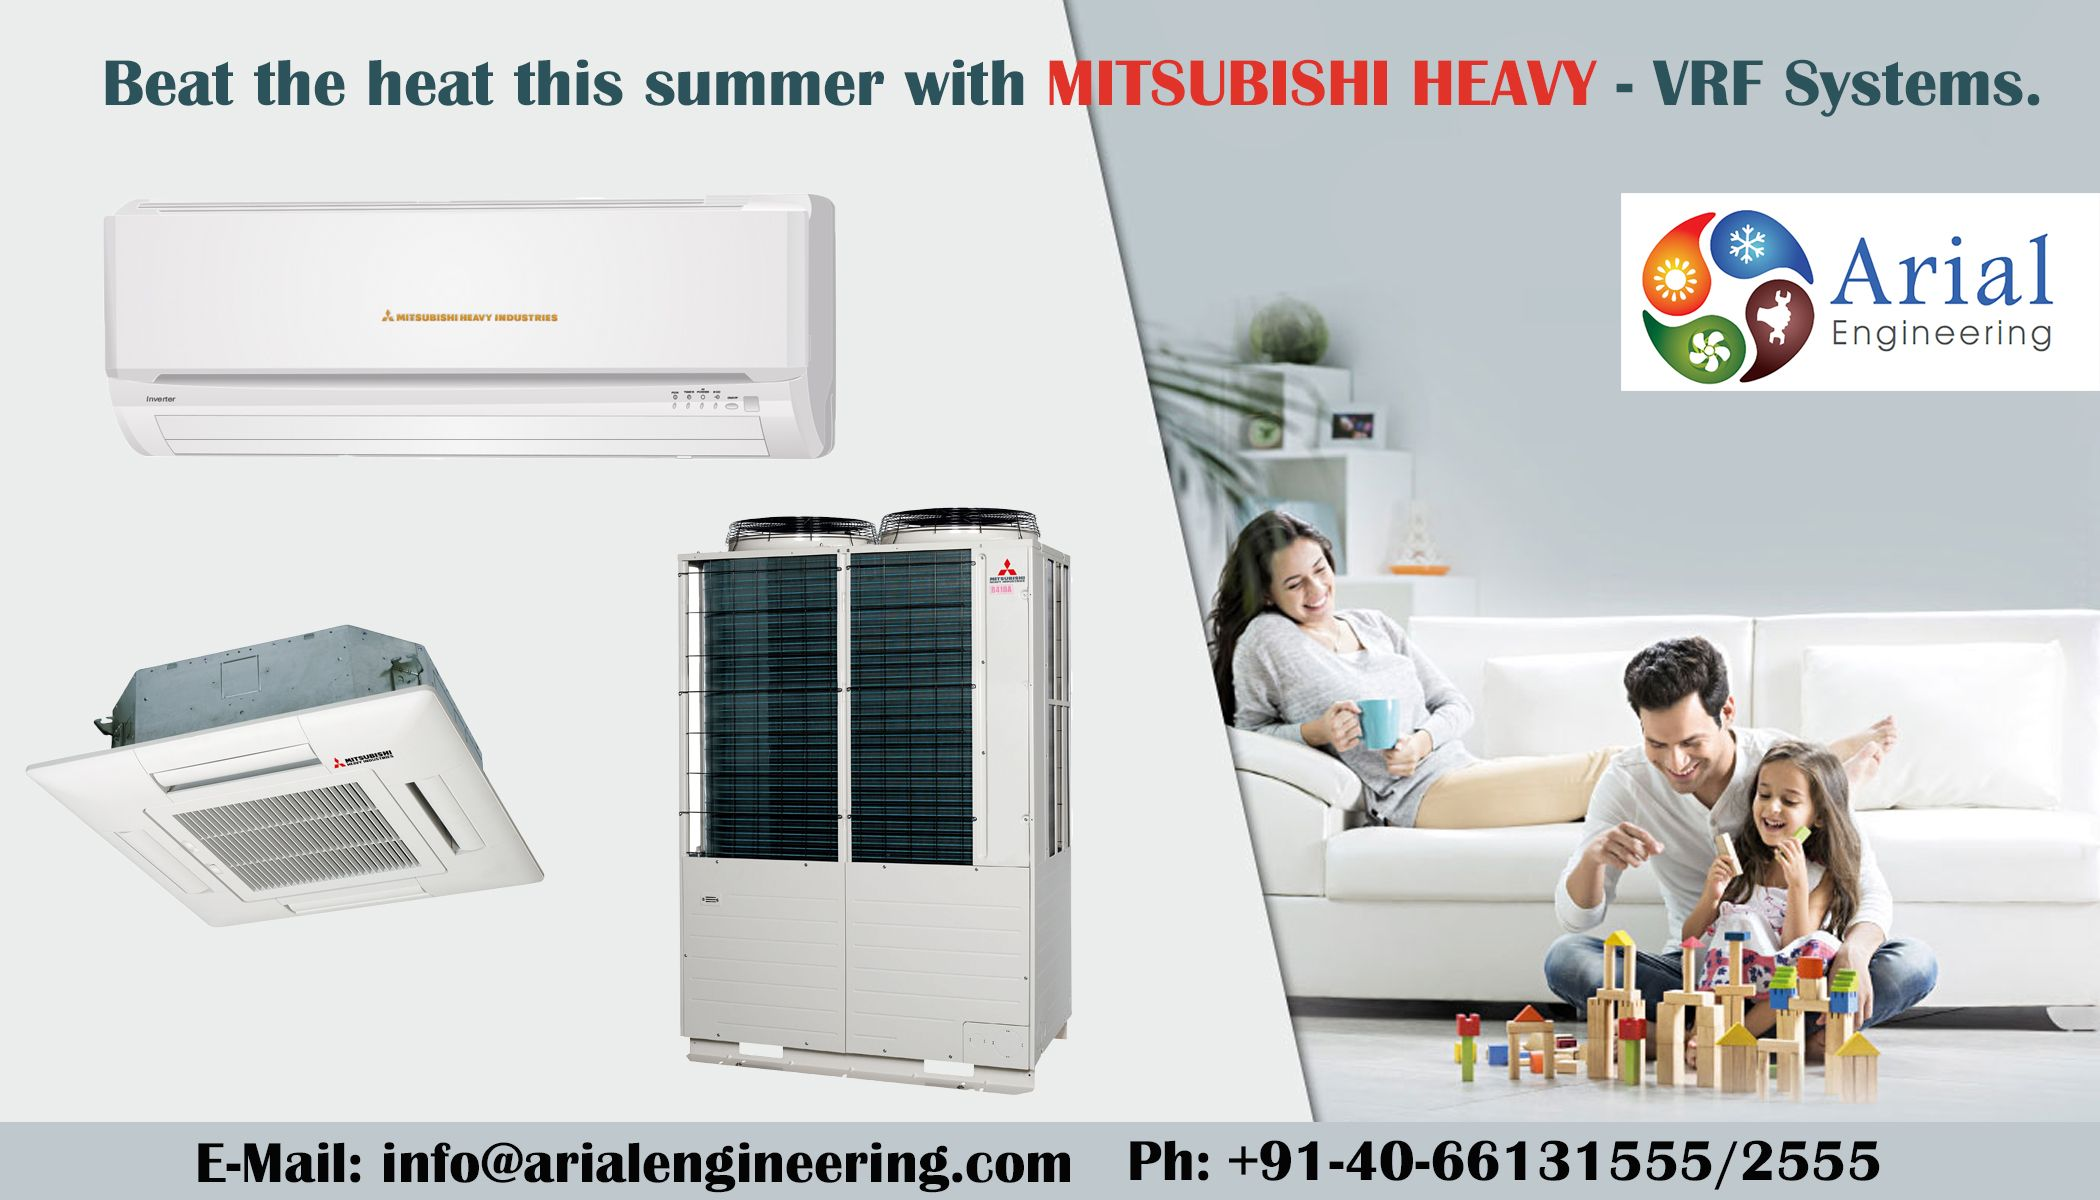 MitsubishiHeavy VRF Systems, Most Energy efficient